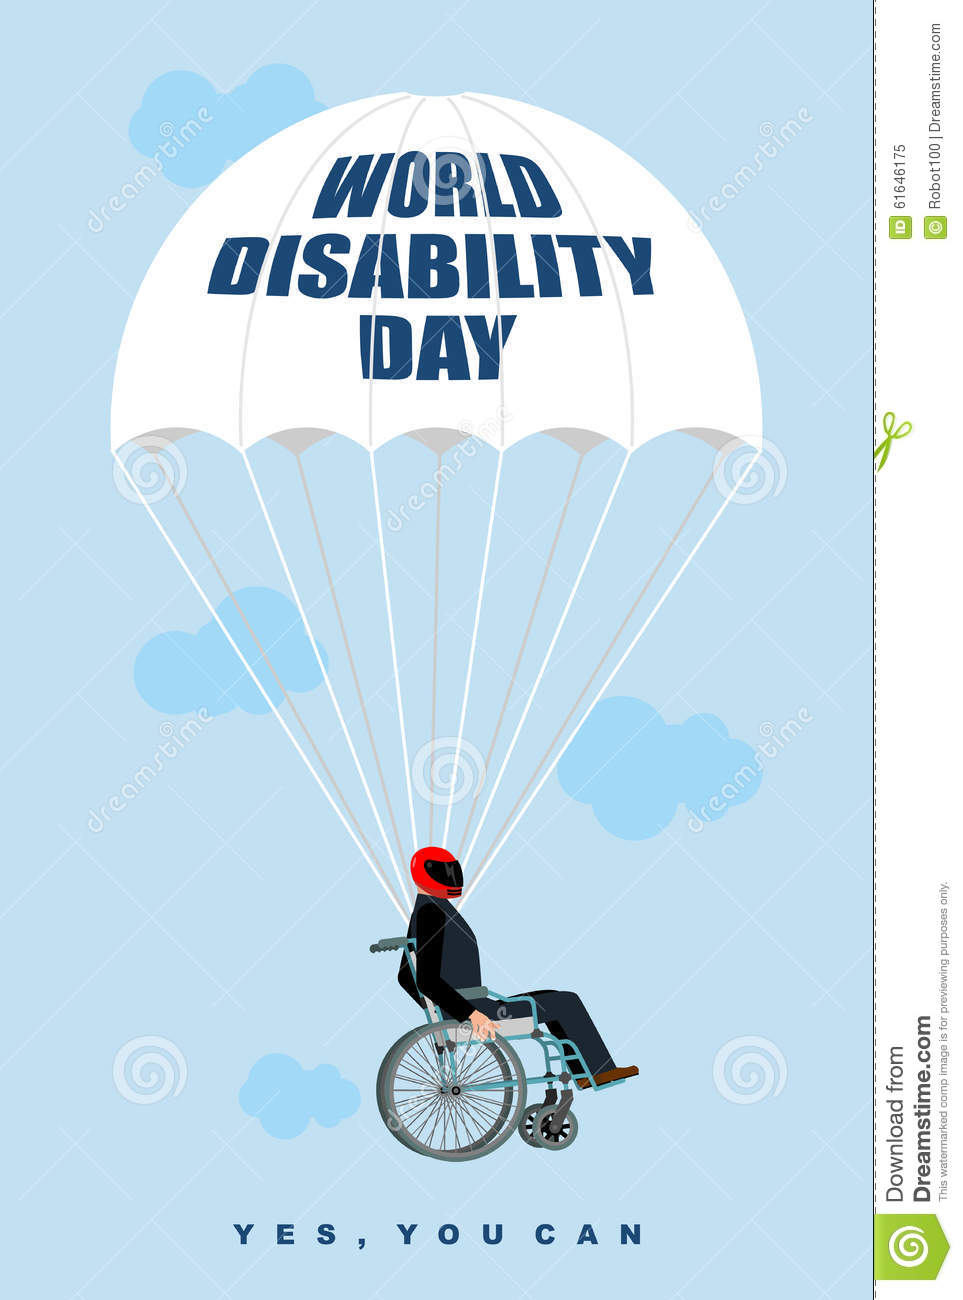 2-World Disabled Day Disability